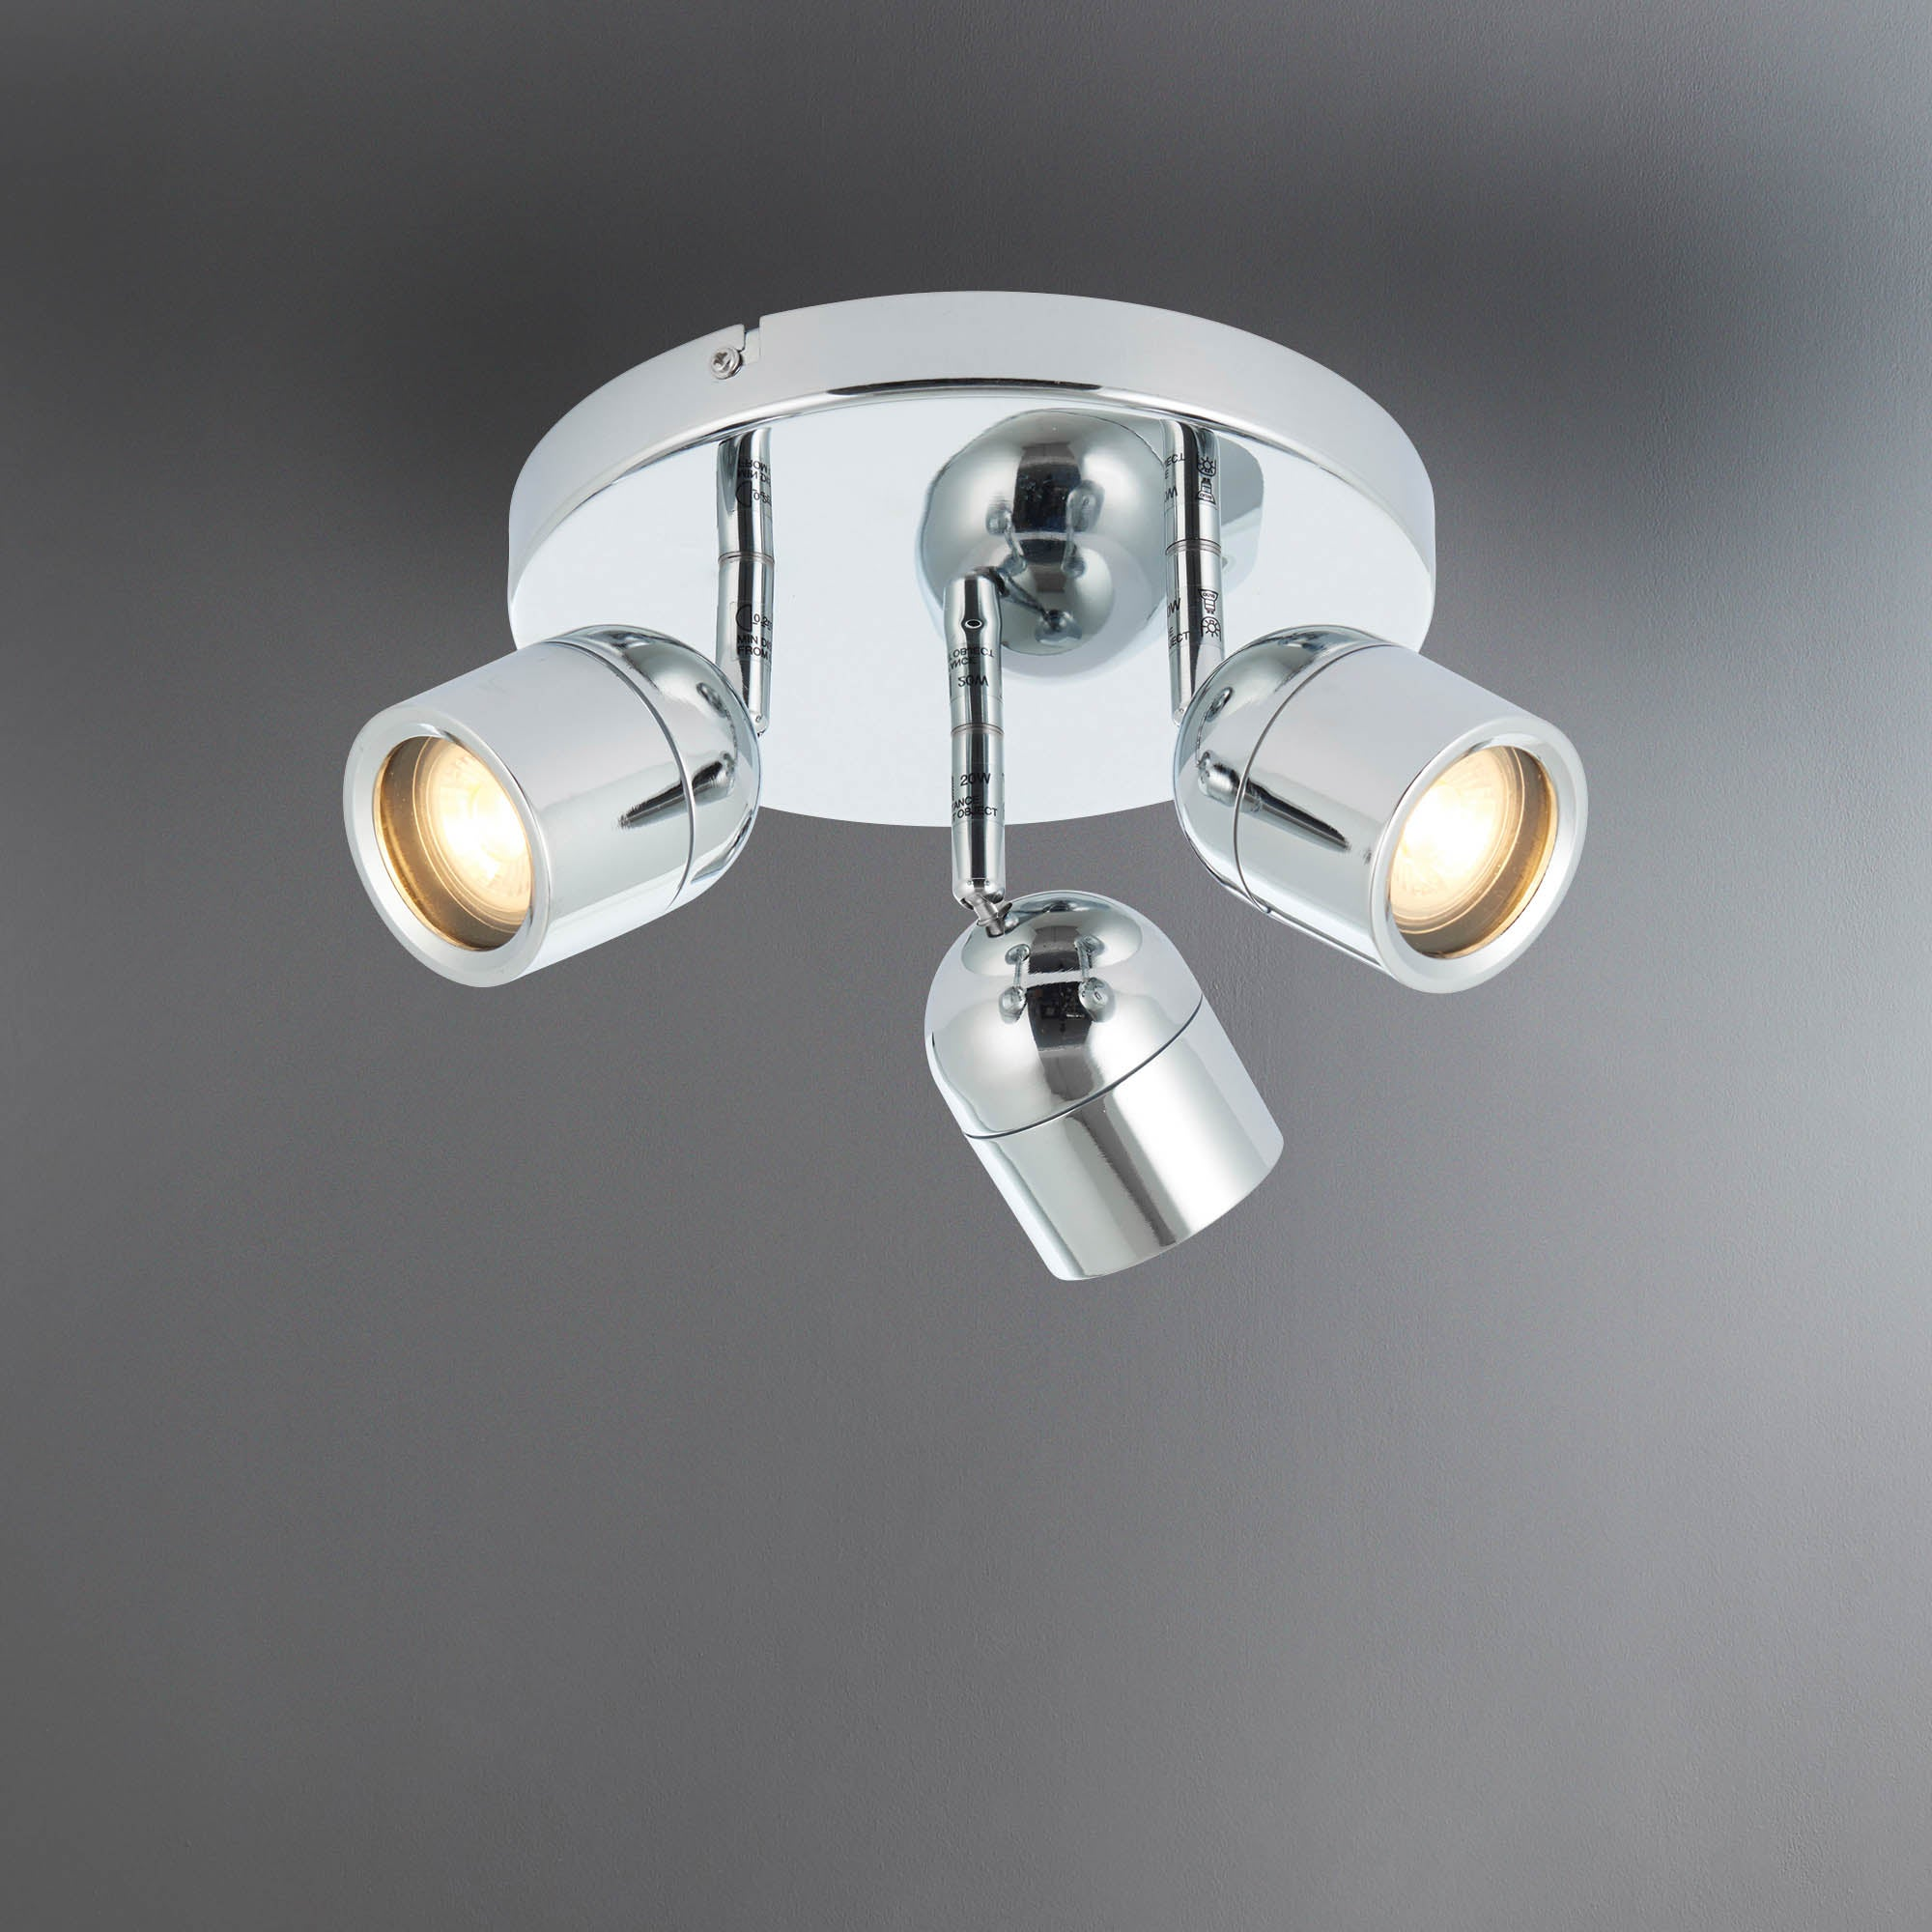 Image of Landis Chrome 3 Light Spotlight Chrome